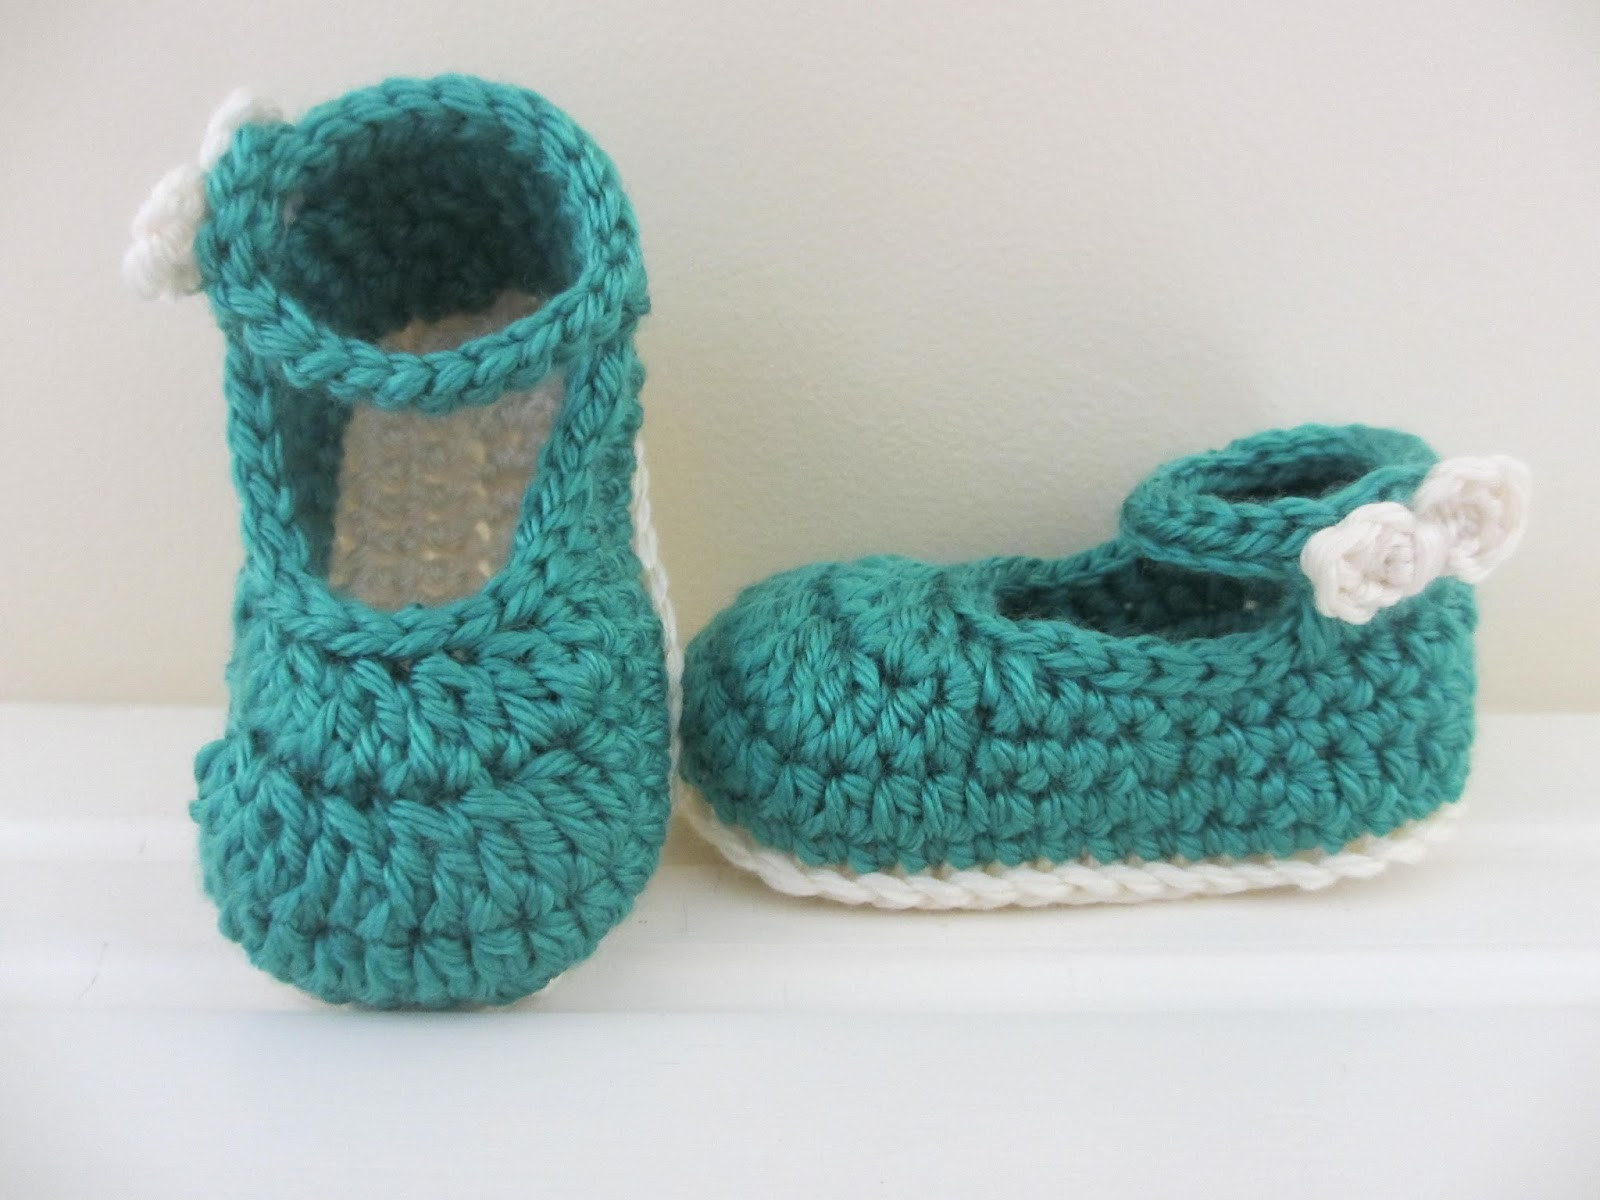 Luxury the Perfect Diy Crochet Hello Kitty Slippers and 28 Free Free Crochet Of Contemporary 42 Ideas Free Crochet